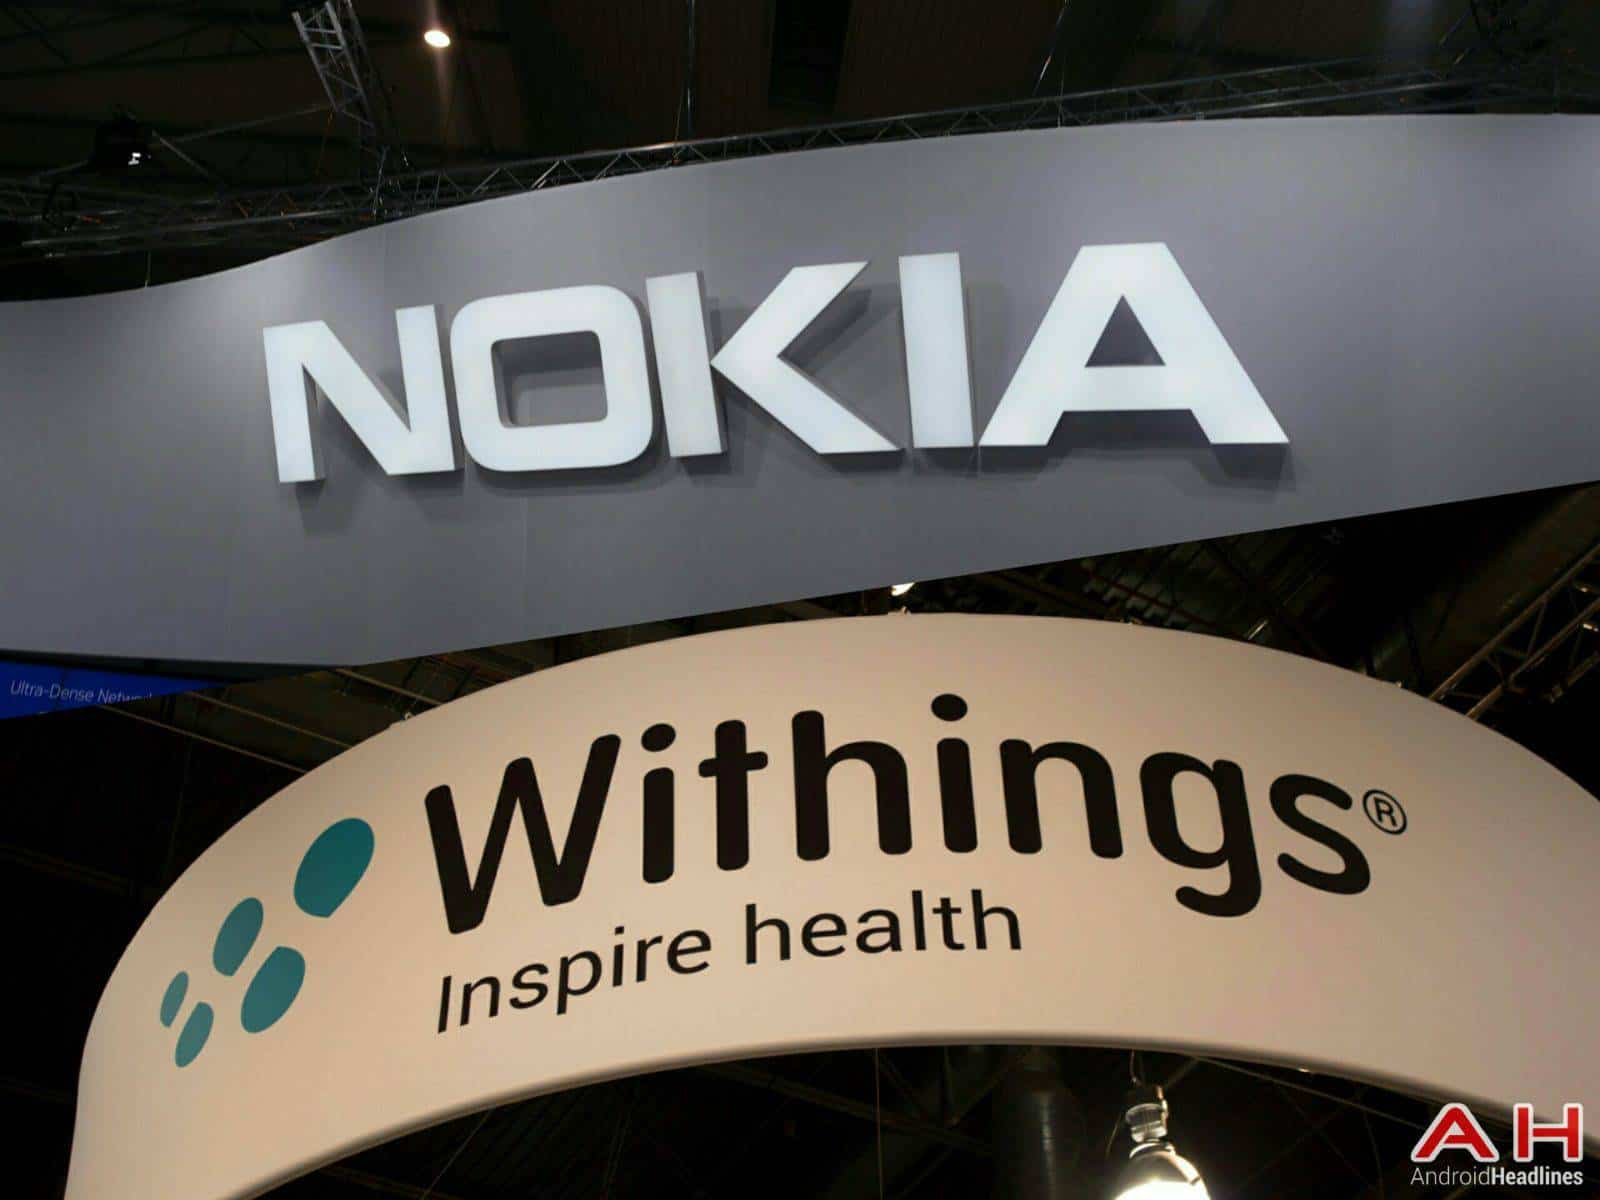 Nokia To Acquire Withings For $191 Million ...